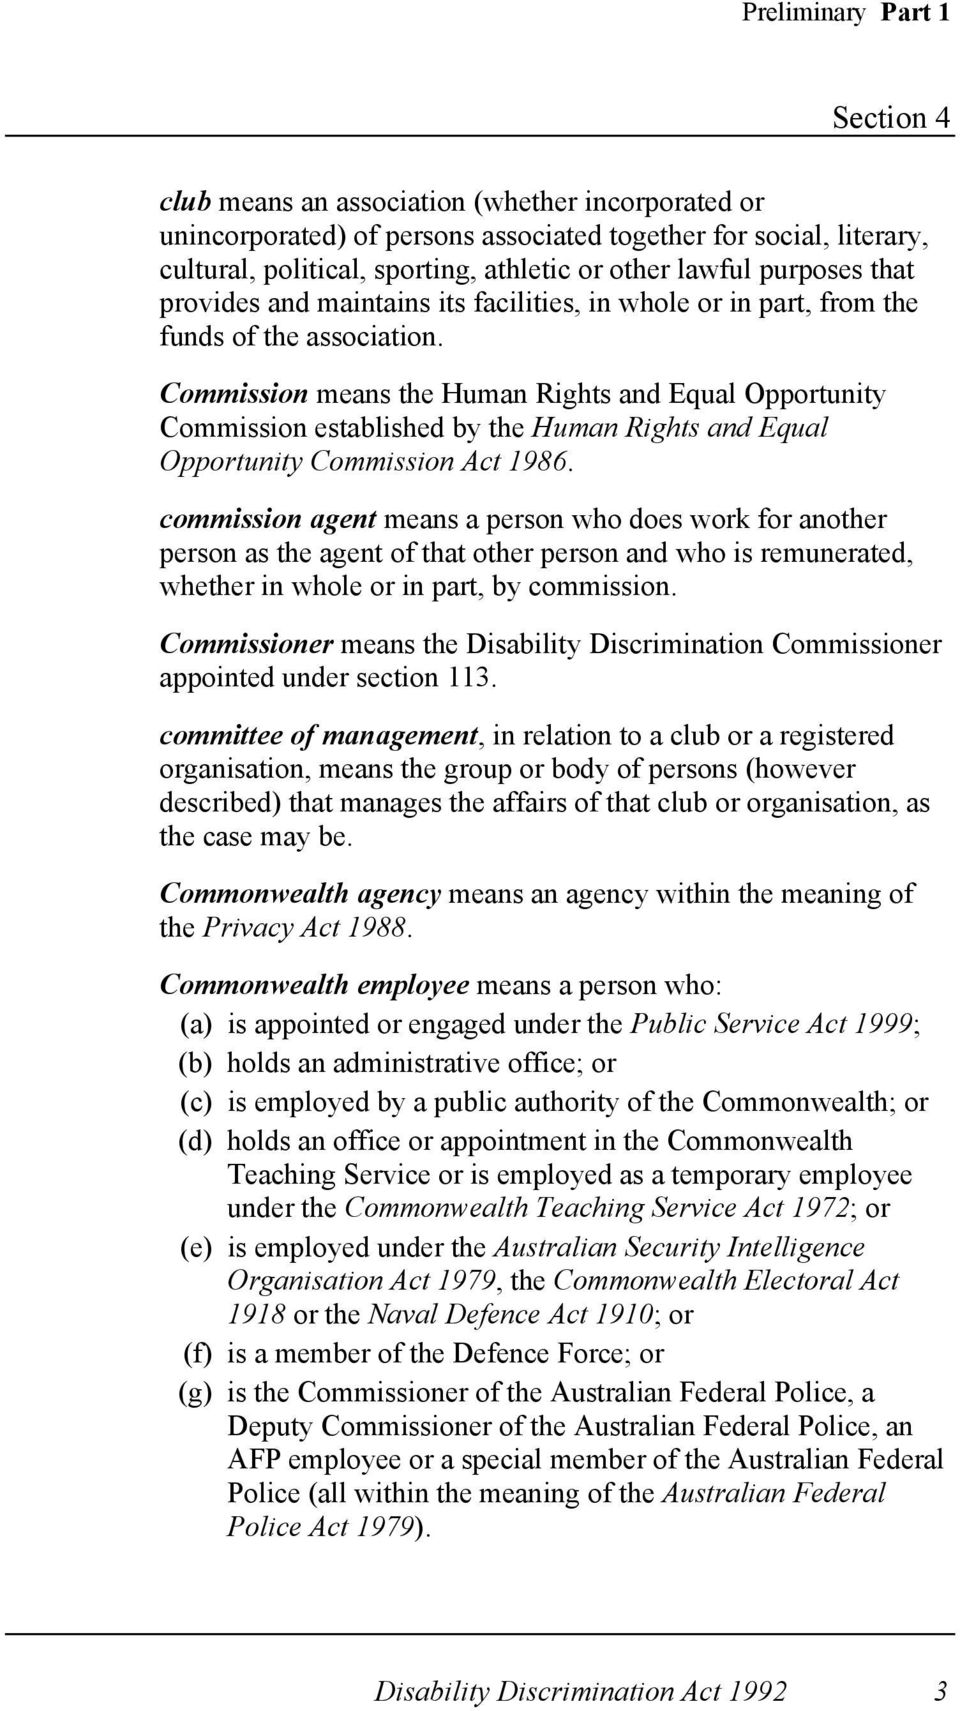 Commission means the Human Rights and Equal Opportunity Commission established by the Human Rights and Equal Opportunity Commission Act 1986.